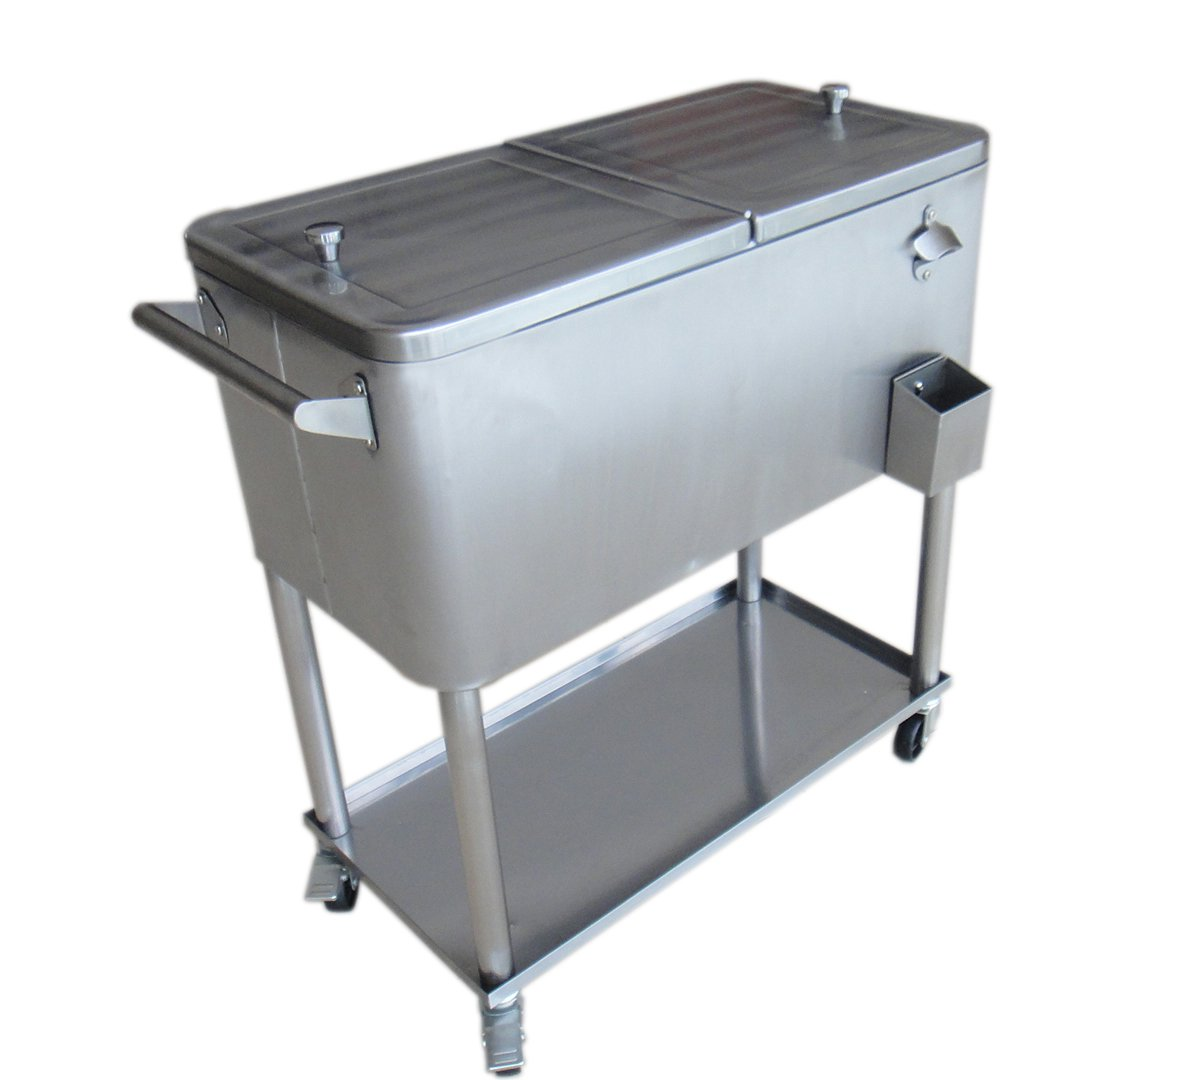 Permasteel PS-206-SS2 Stainless Steel Patio Cooler with Bottom Tray, 80-Quart